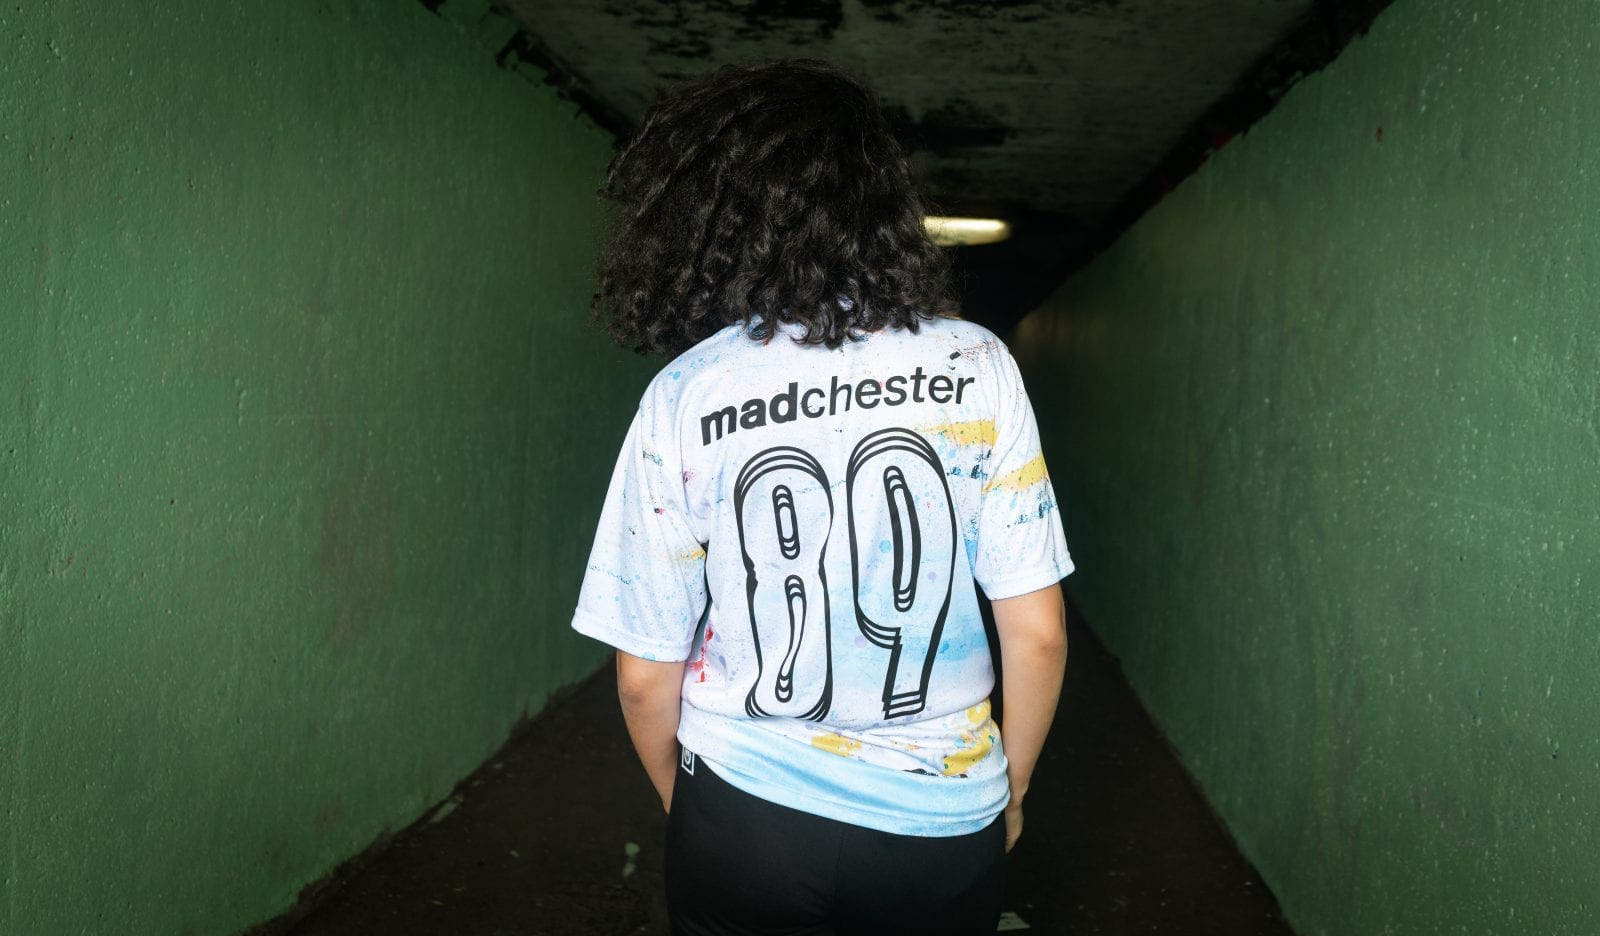 Special edition PUMA x Man City x Madchester jersey goes on sale, The Manc